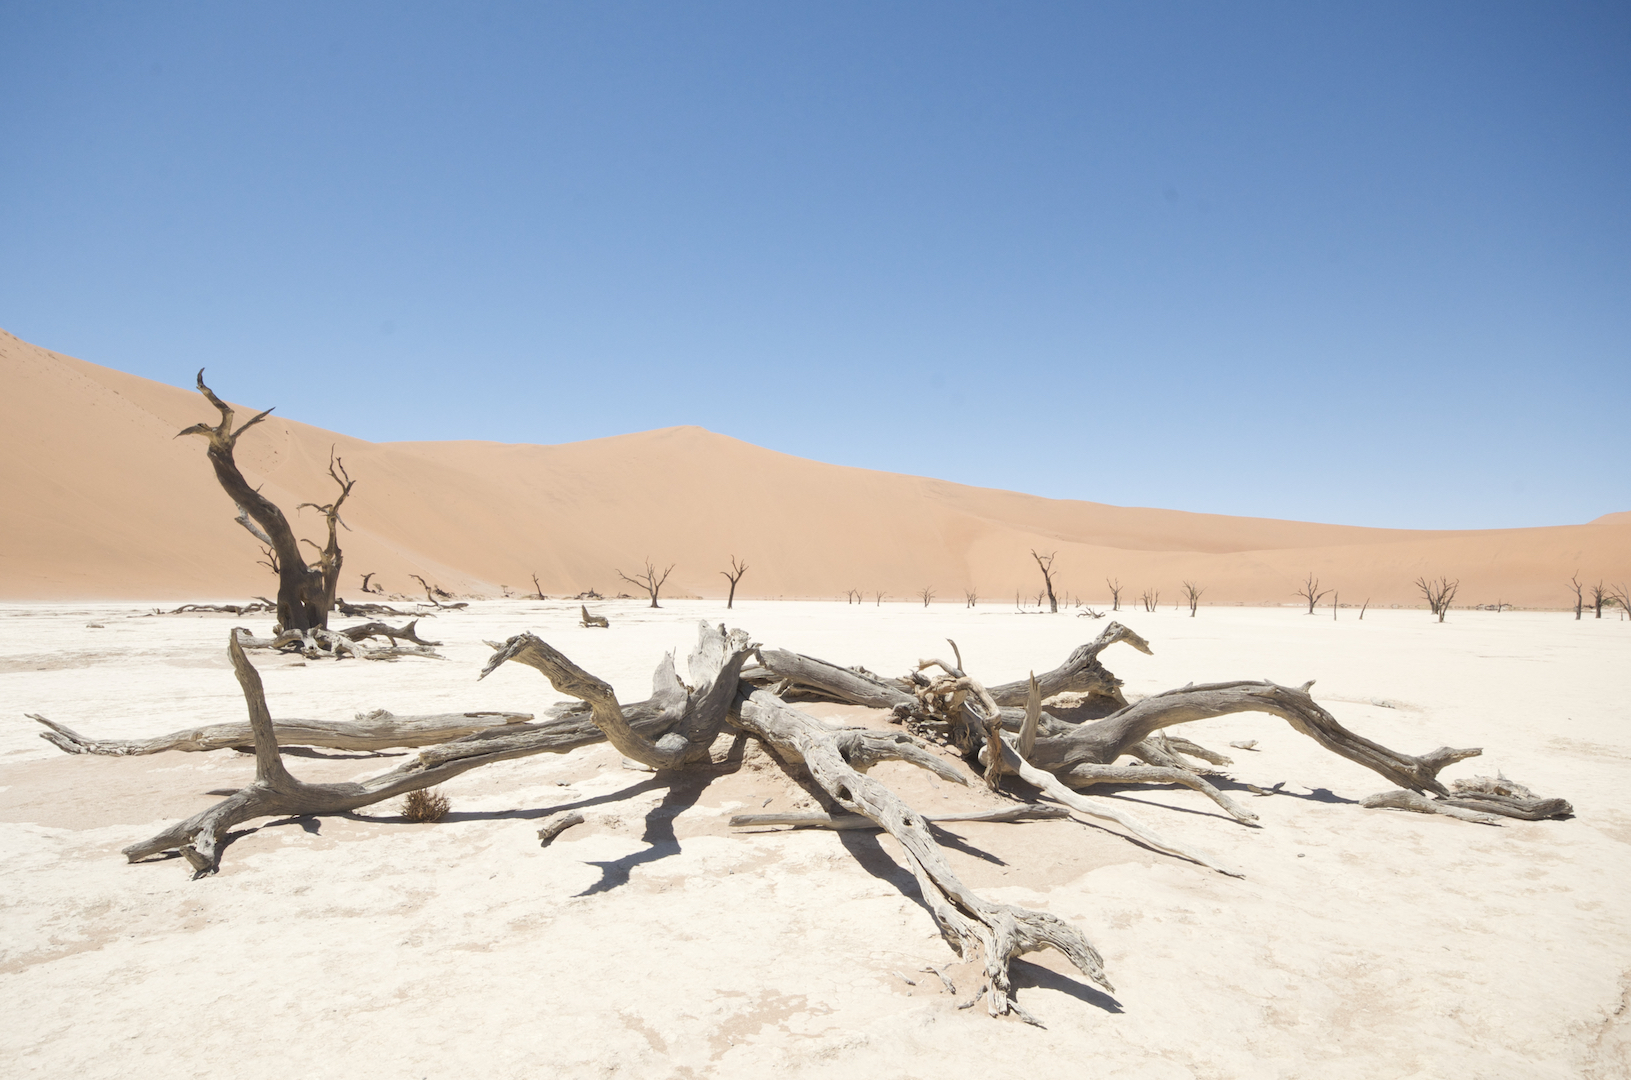 things to do in Namibia: visit deadvlei